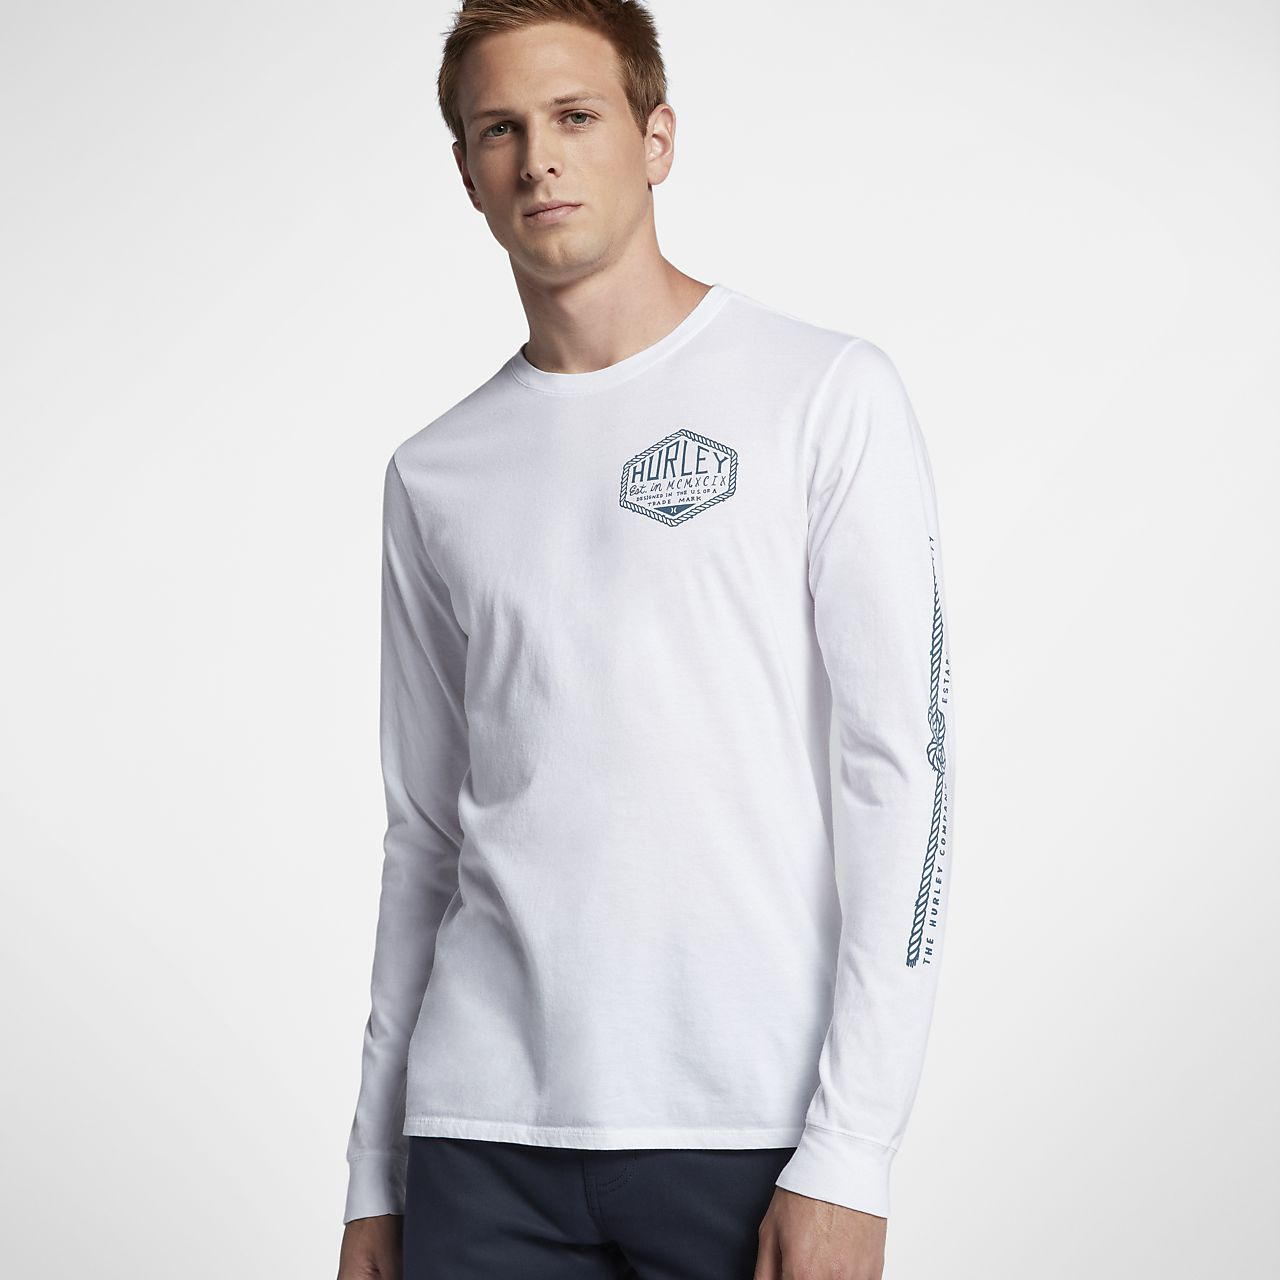 Hurley Framework Men's Long Sleeve T-Shirt. Nike.com